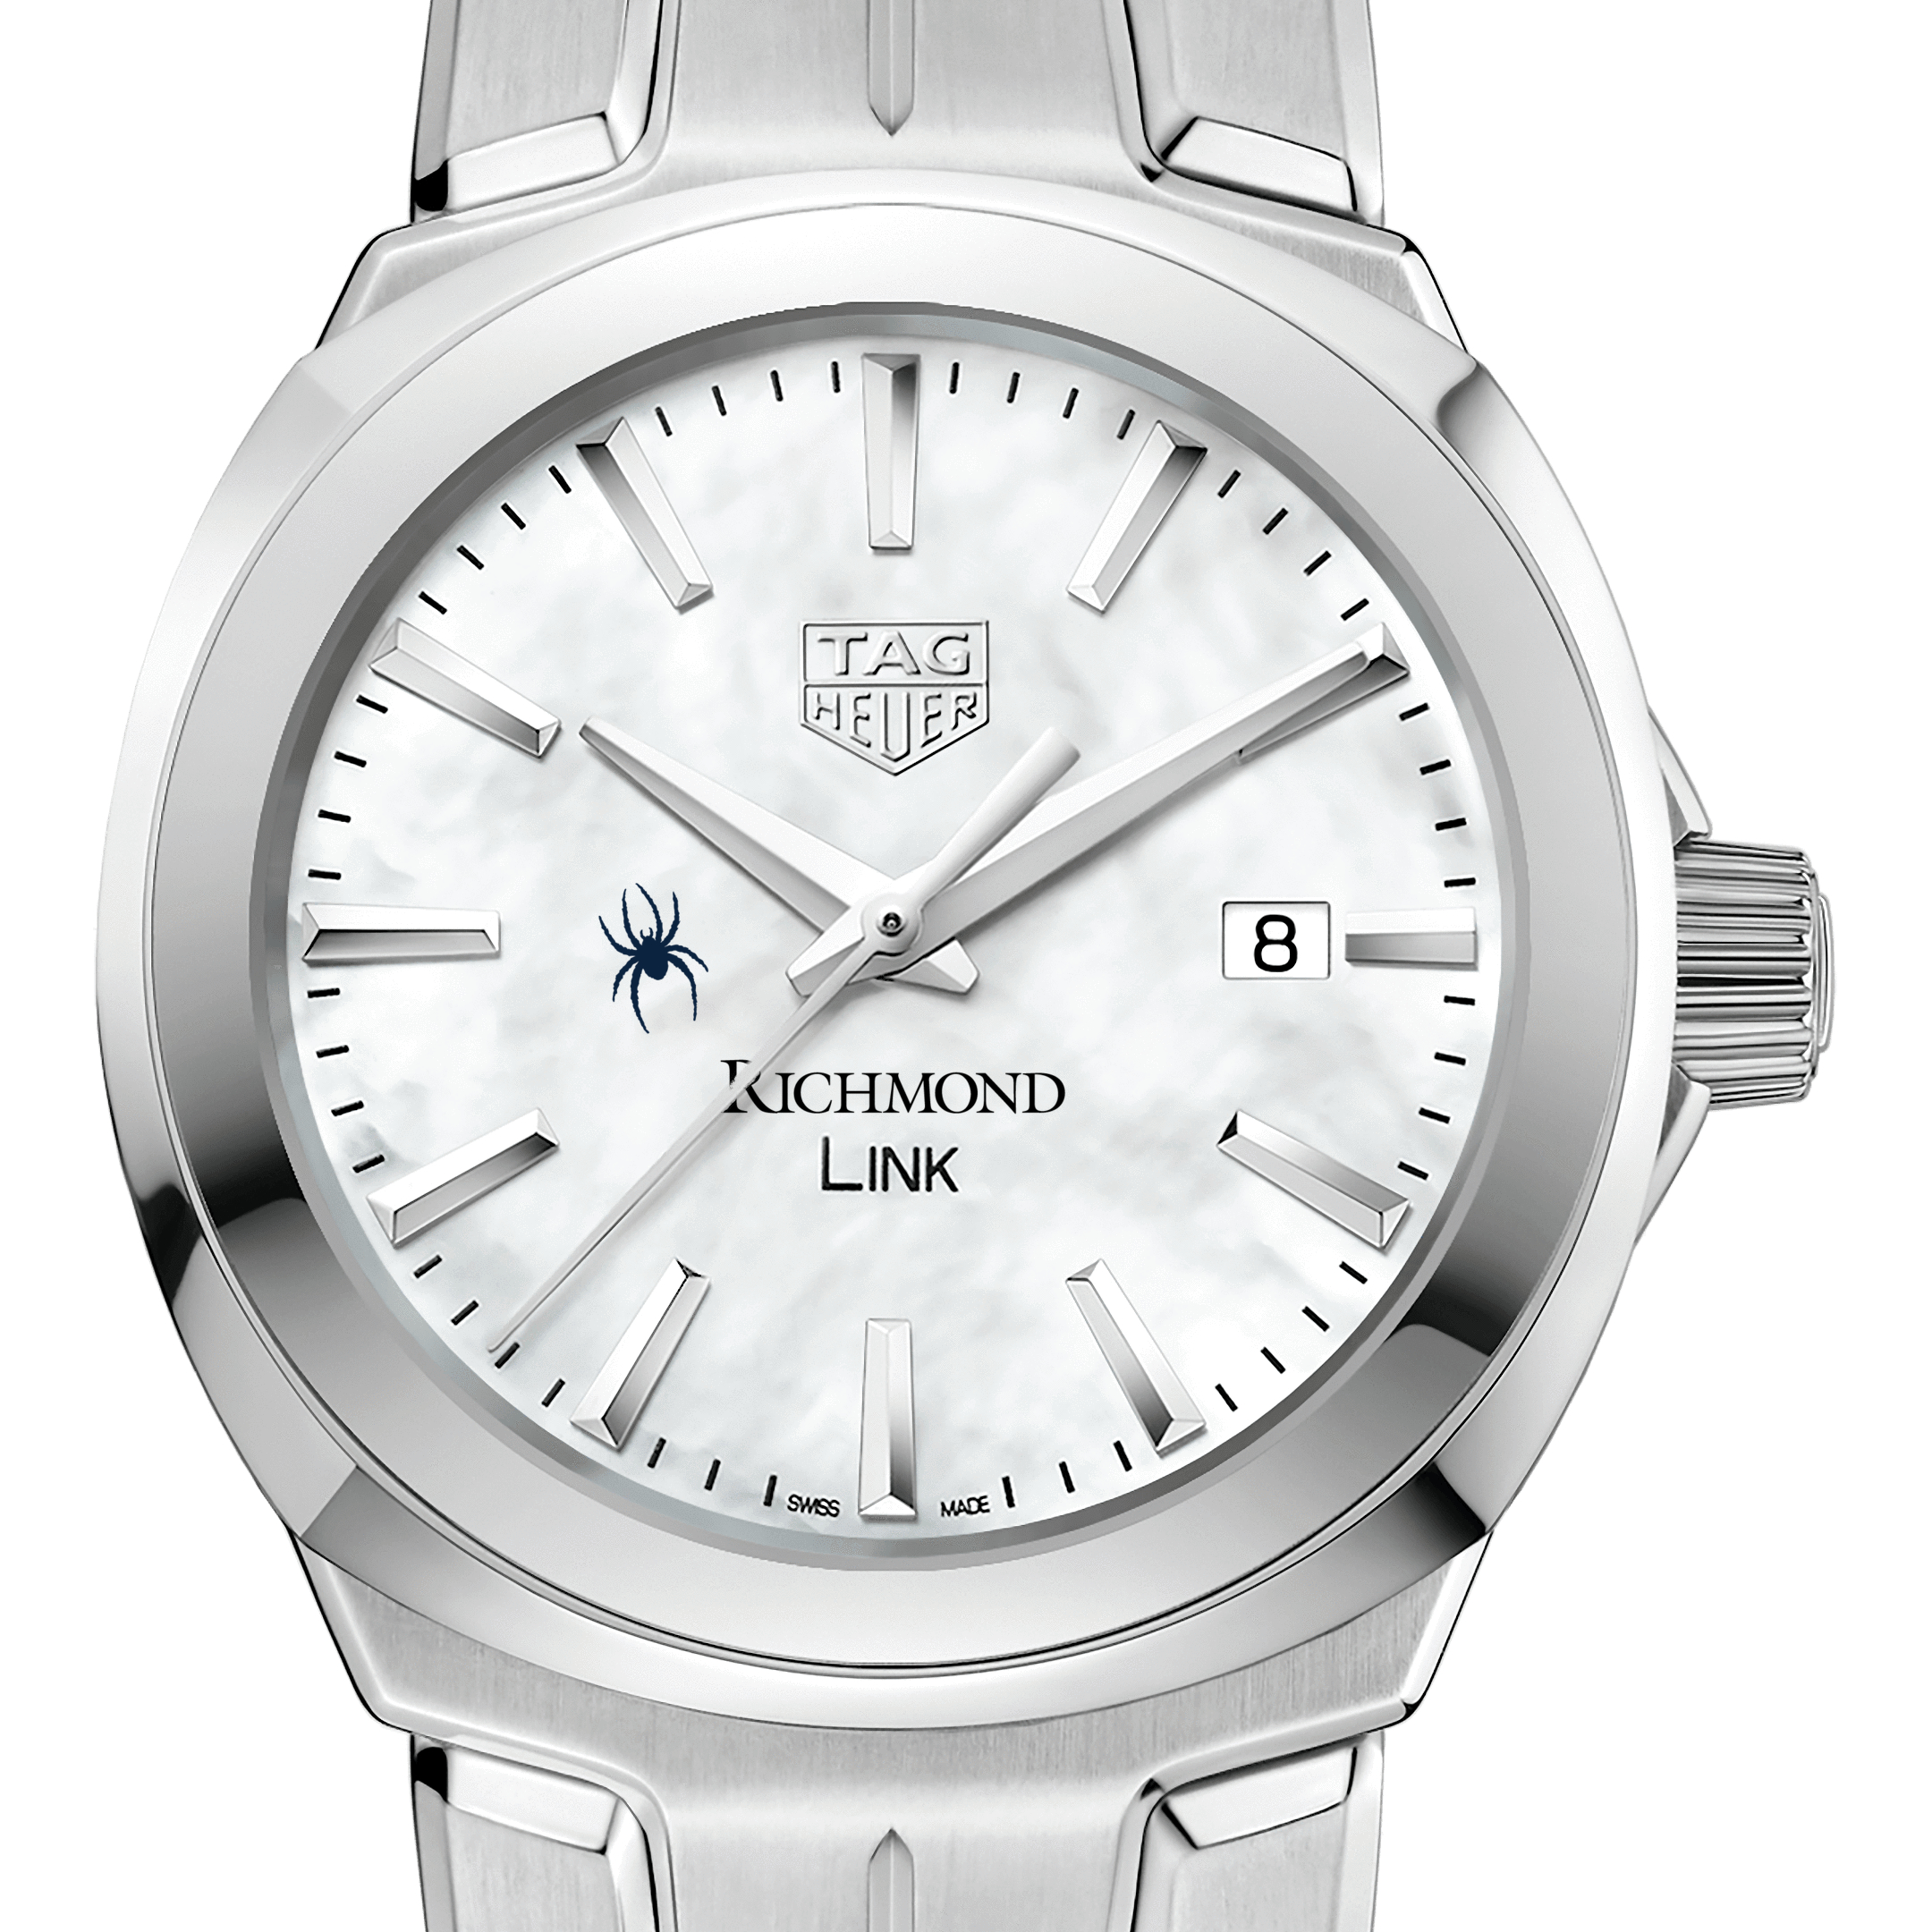 University of Richmond TAG Heuer LINK for Women